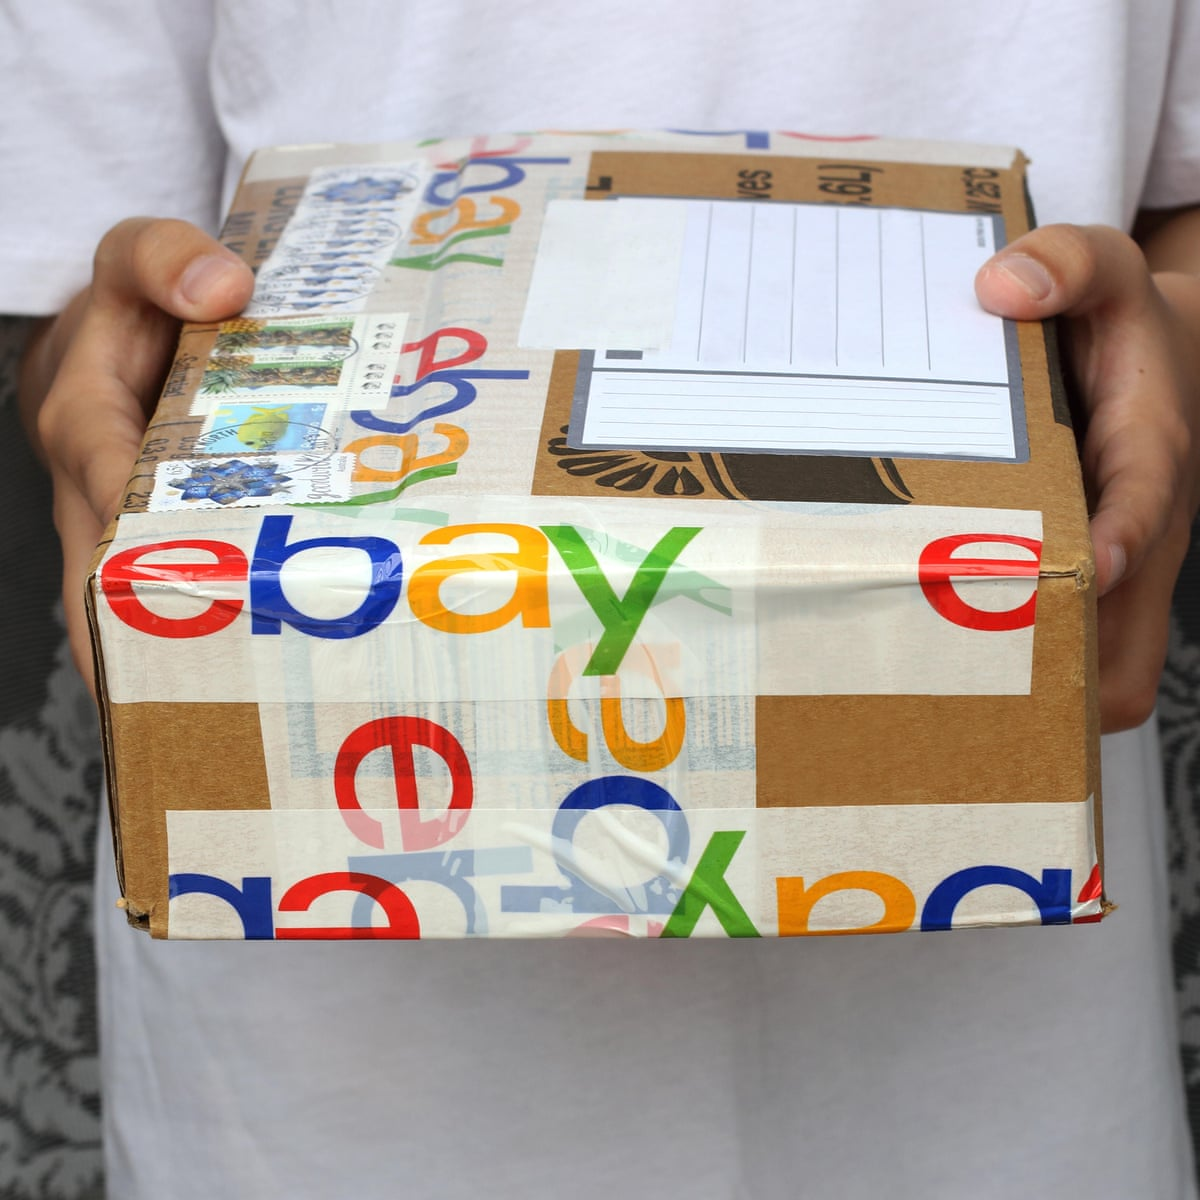 eBay parcel held by hands